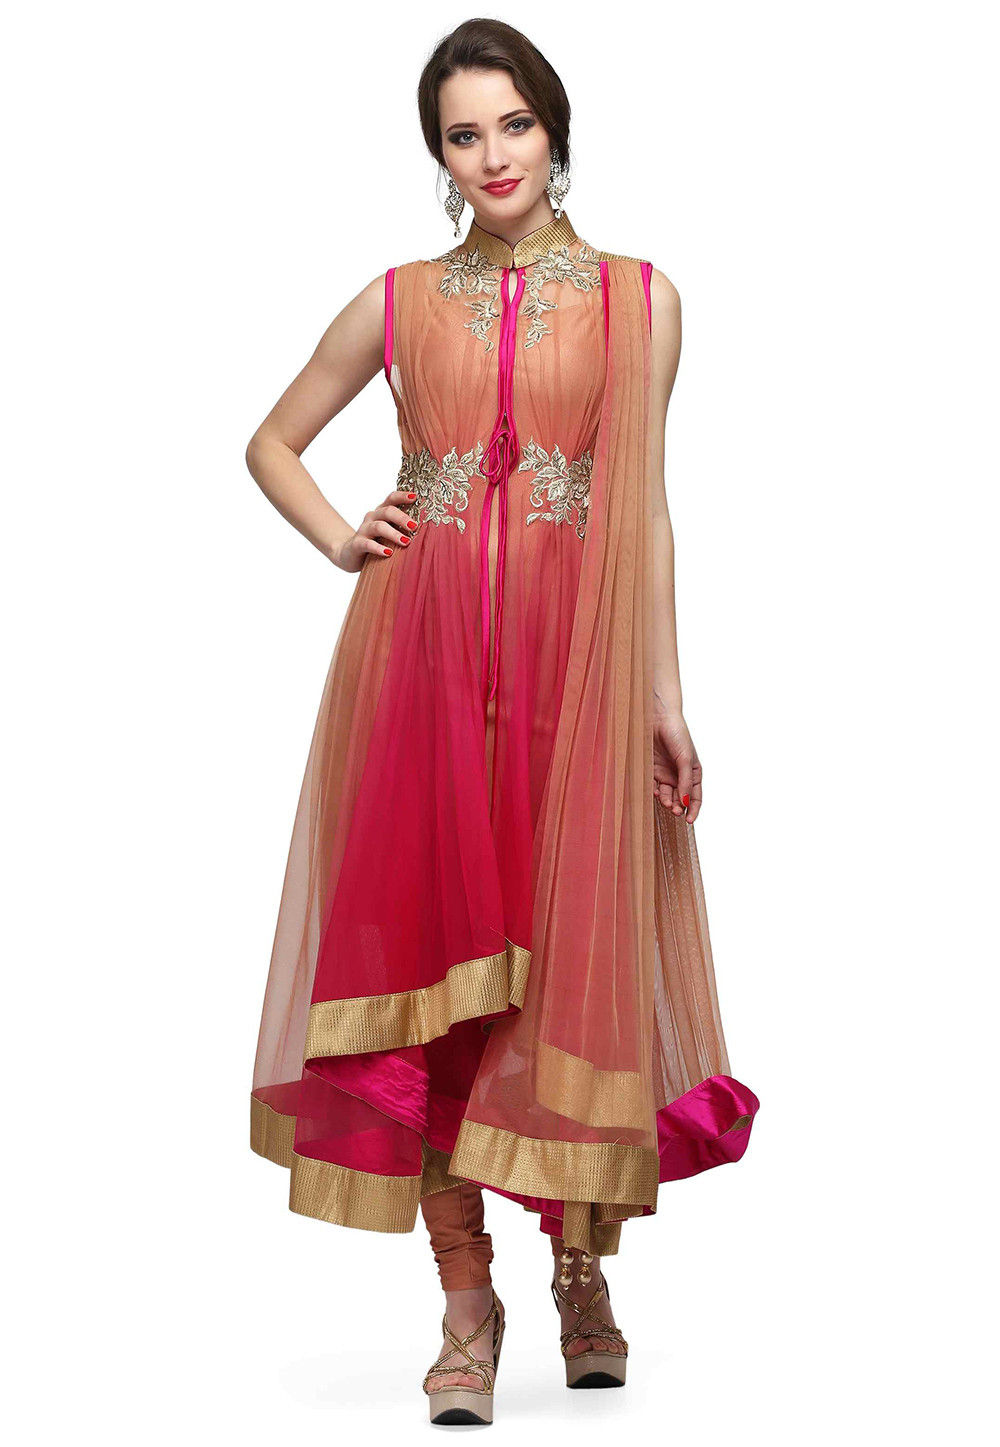 Hand Embroidered Net A Line Suit in Shaded Beige and Fuchsia